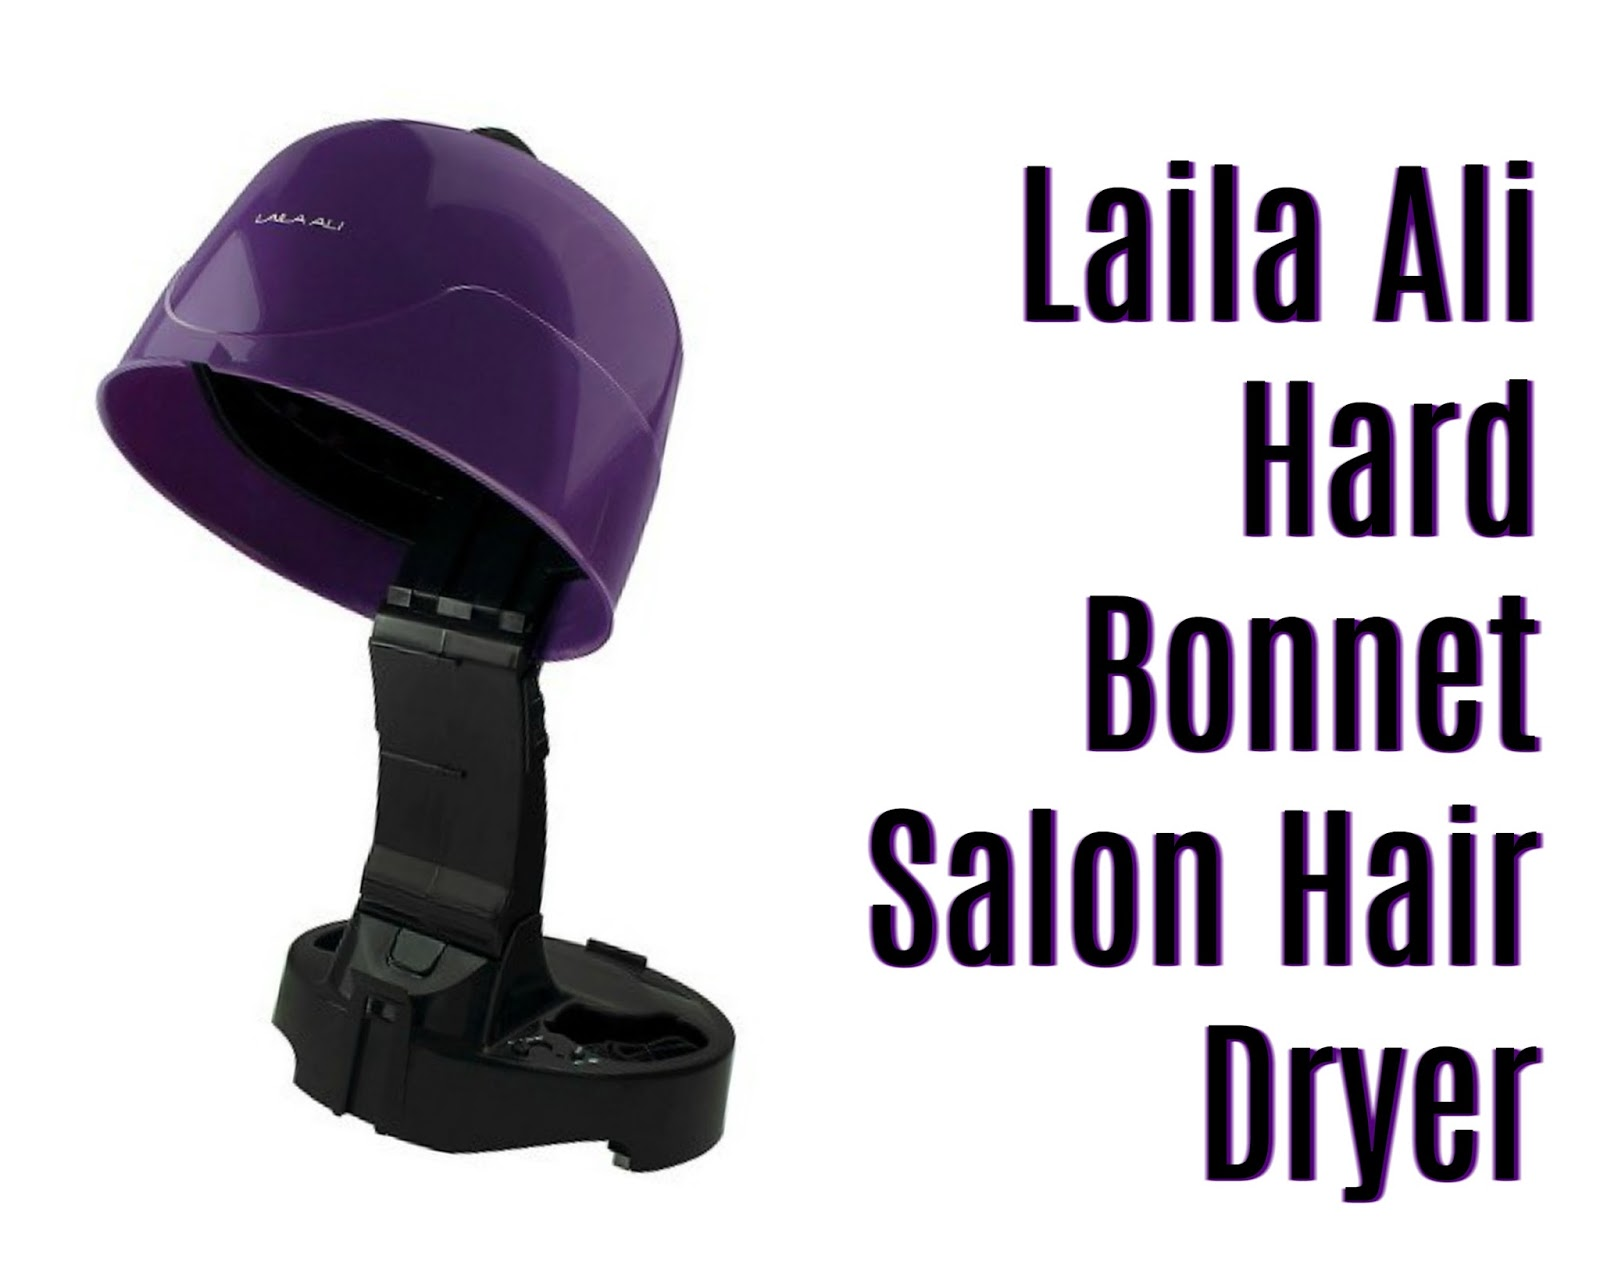 Best Portable Hooded Natural Hair Dryer - We've Got Six! From super cheaper to ultra-expensive, we've got the best ones for your natural hair.